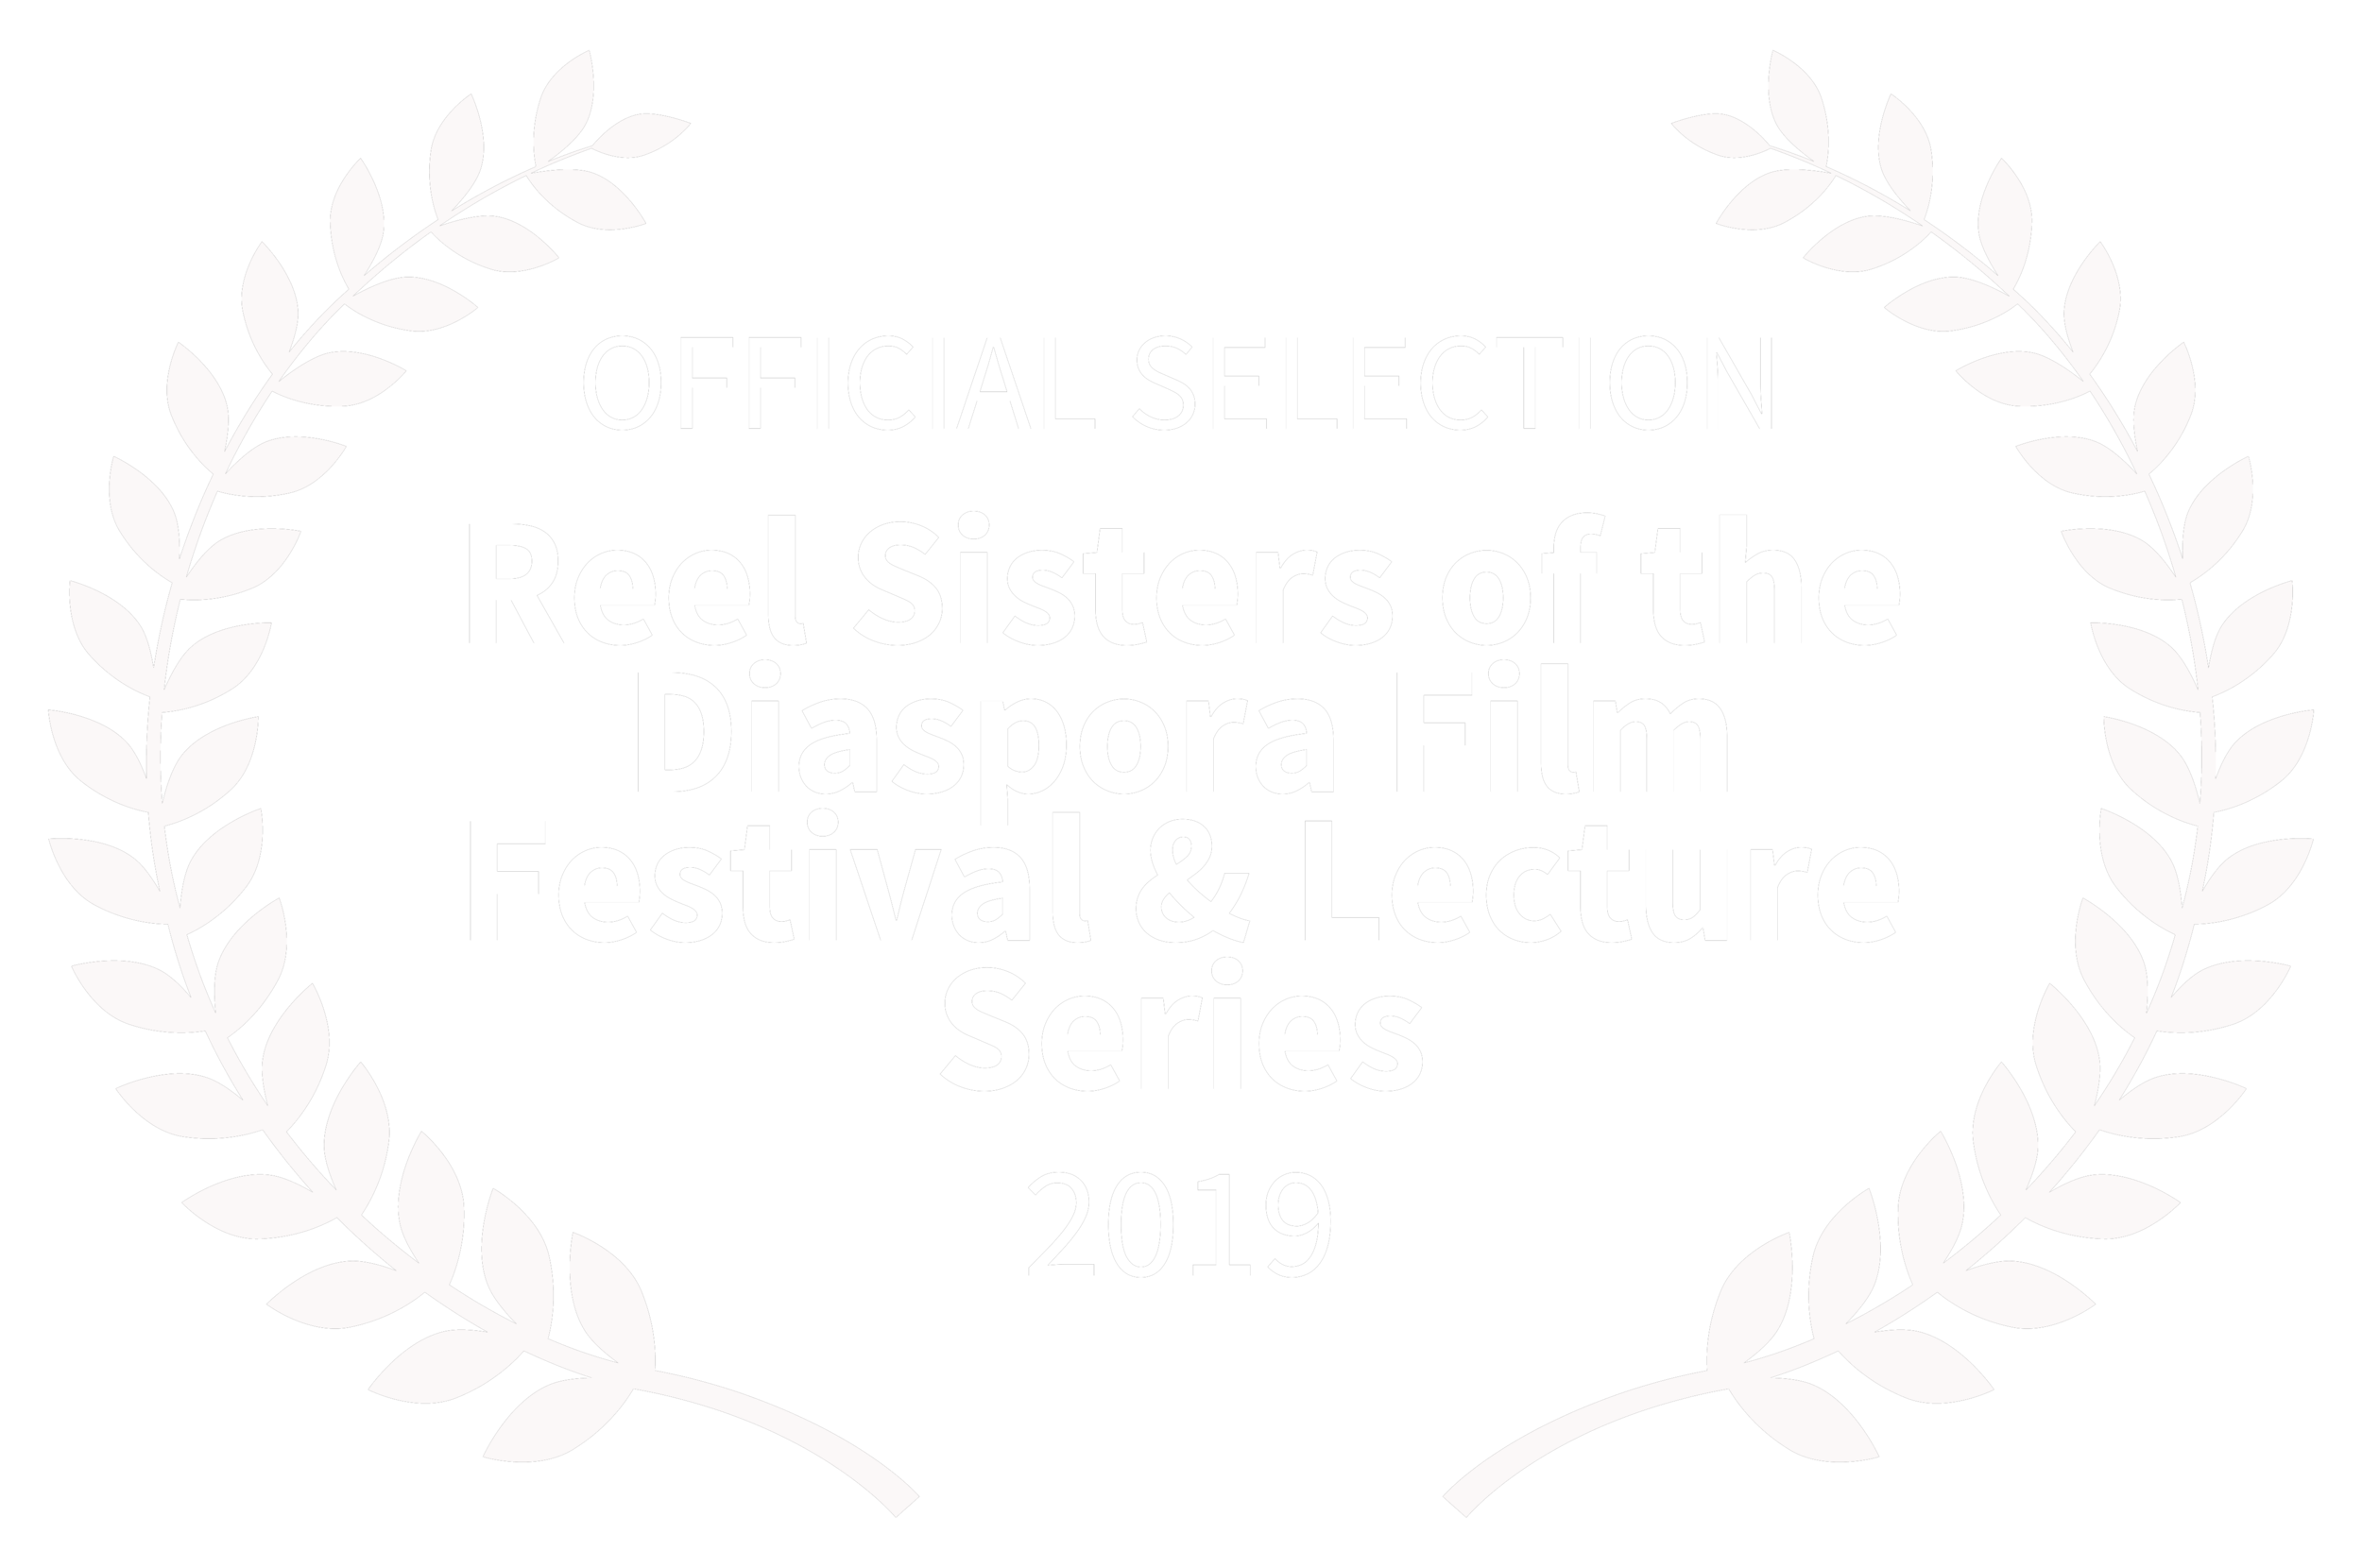 White_ReelSistersoftheDiasporaFilmFestivalLectureSeries-2019.png